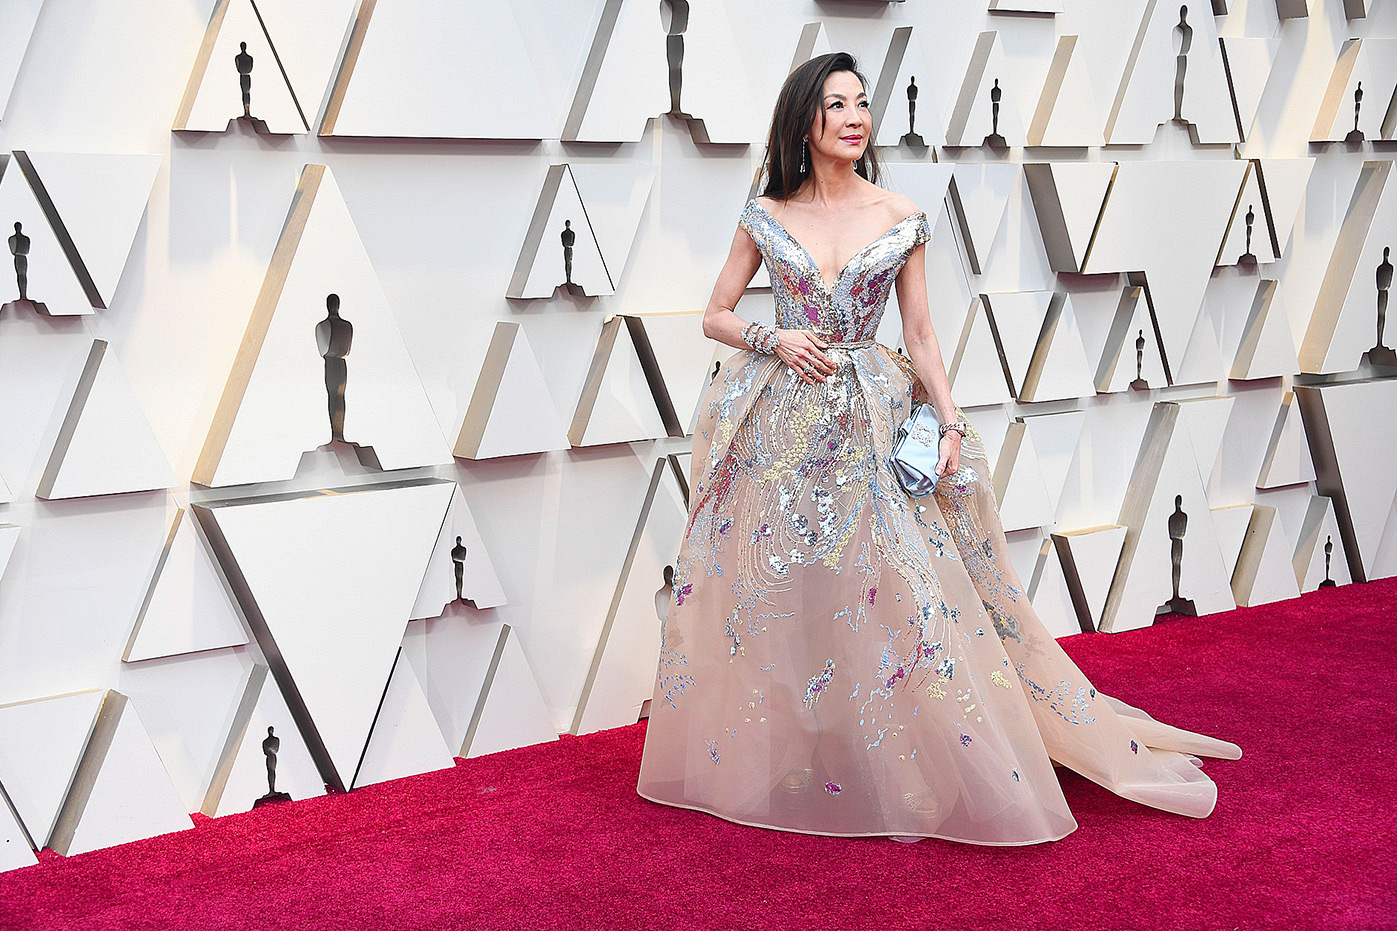 Michelle Yeoh in Elie Saab and Chopard Jewelry